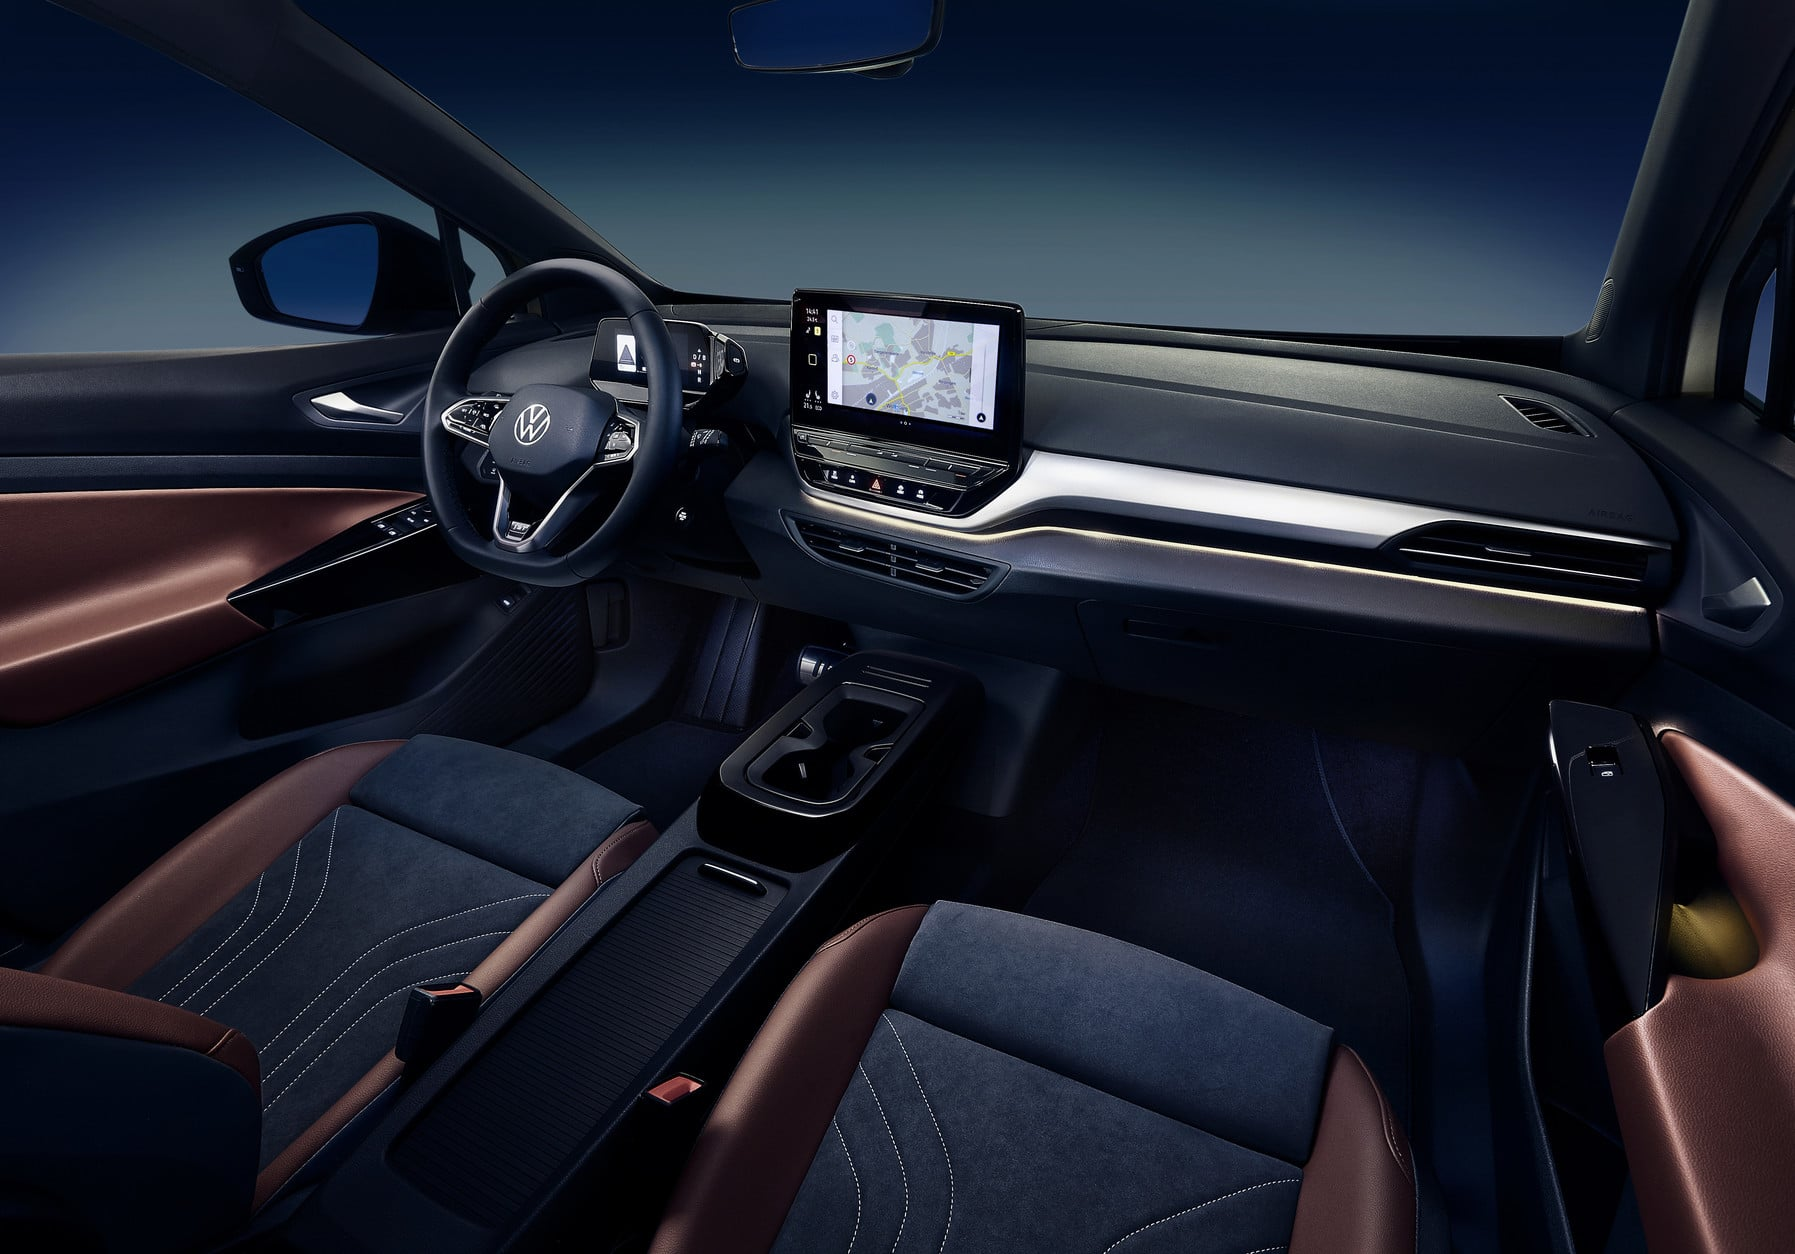 Interior Design and Technology of the Volkswagen ID.4